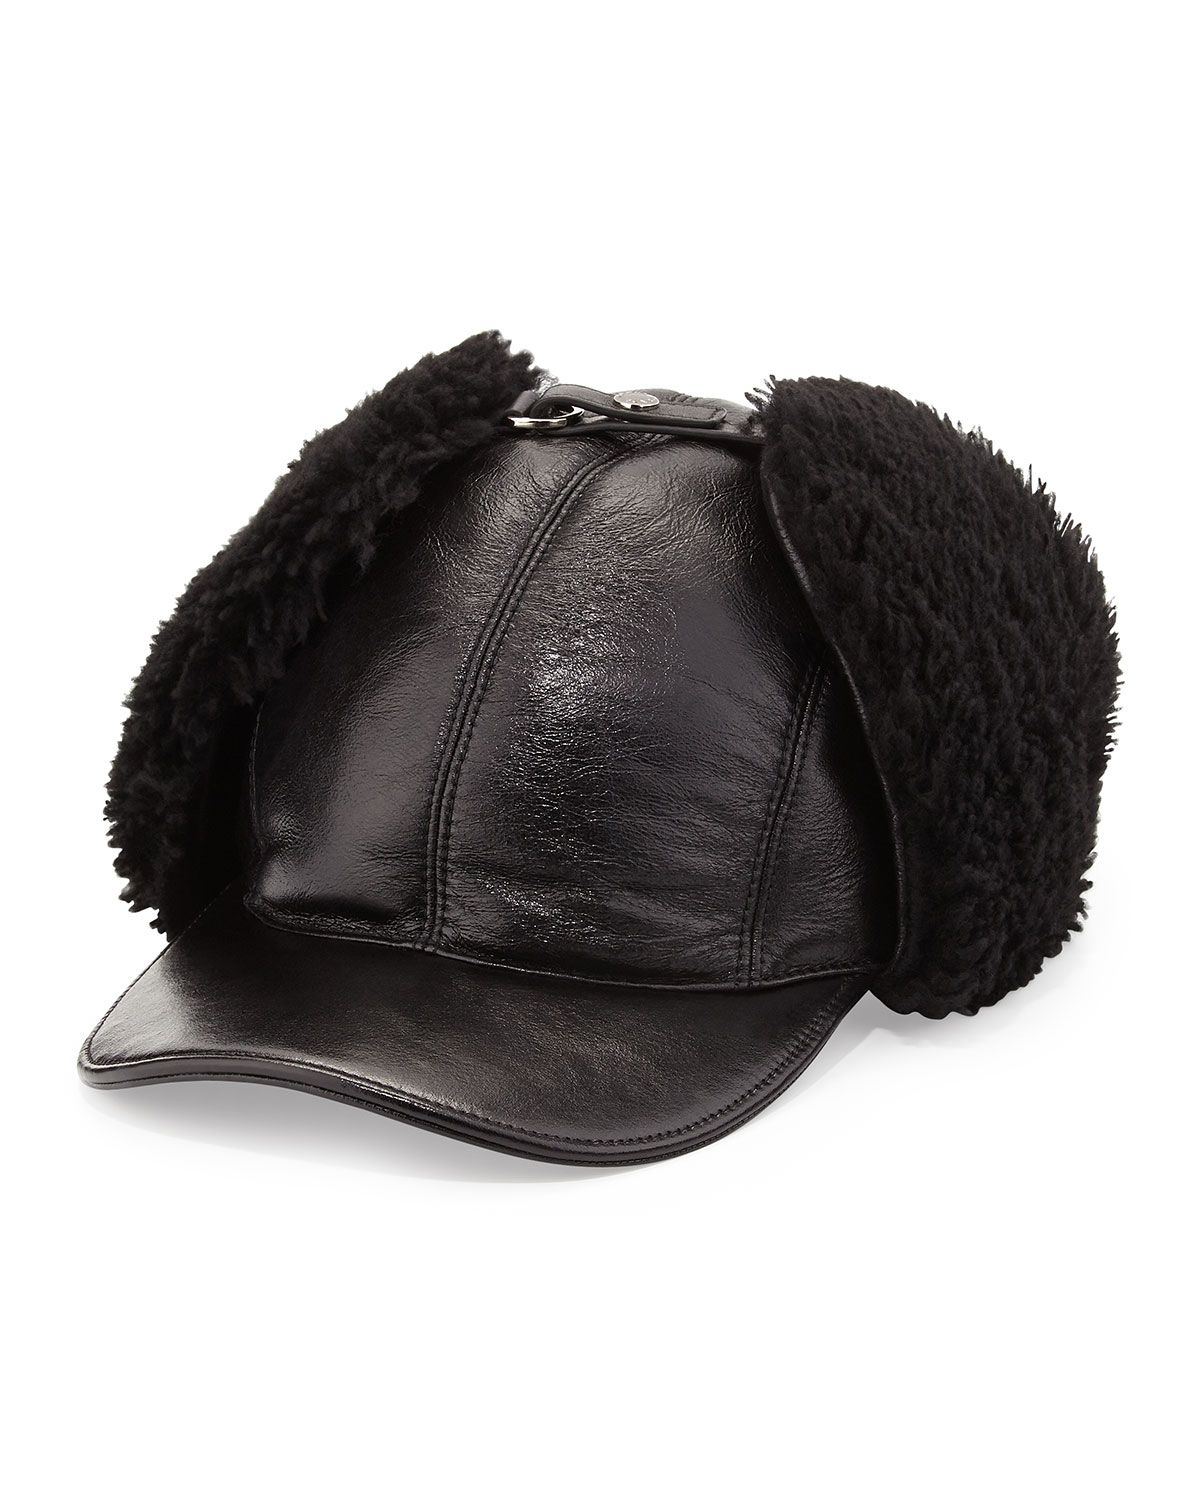 Prada Leather and Shearling Trapper Baseball Cap c0ca49f2e12a